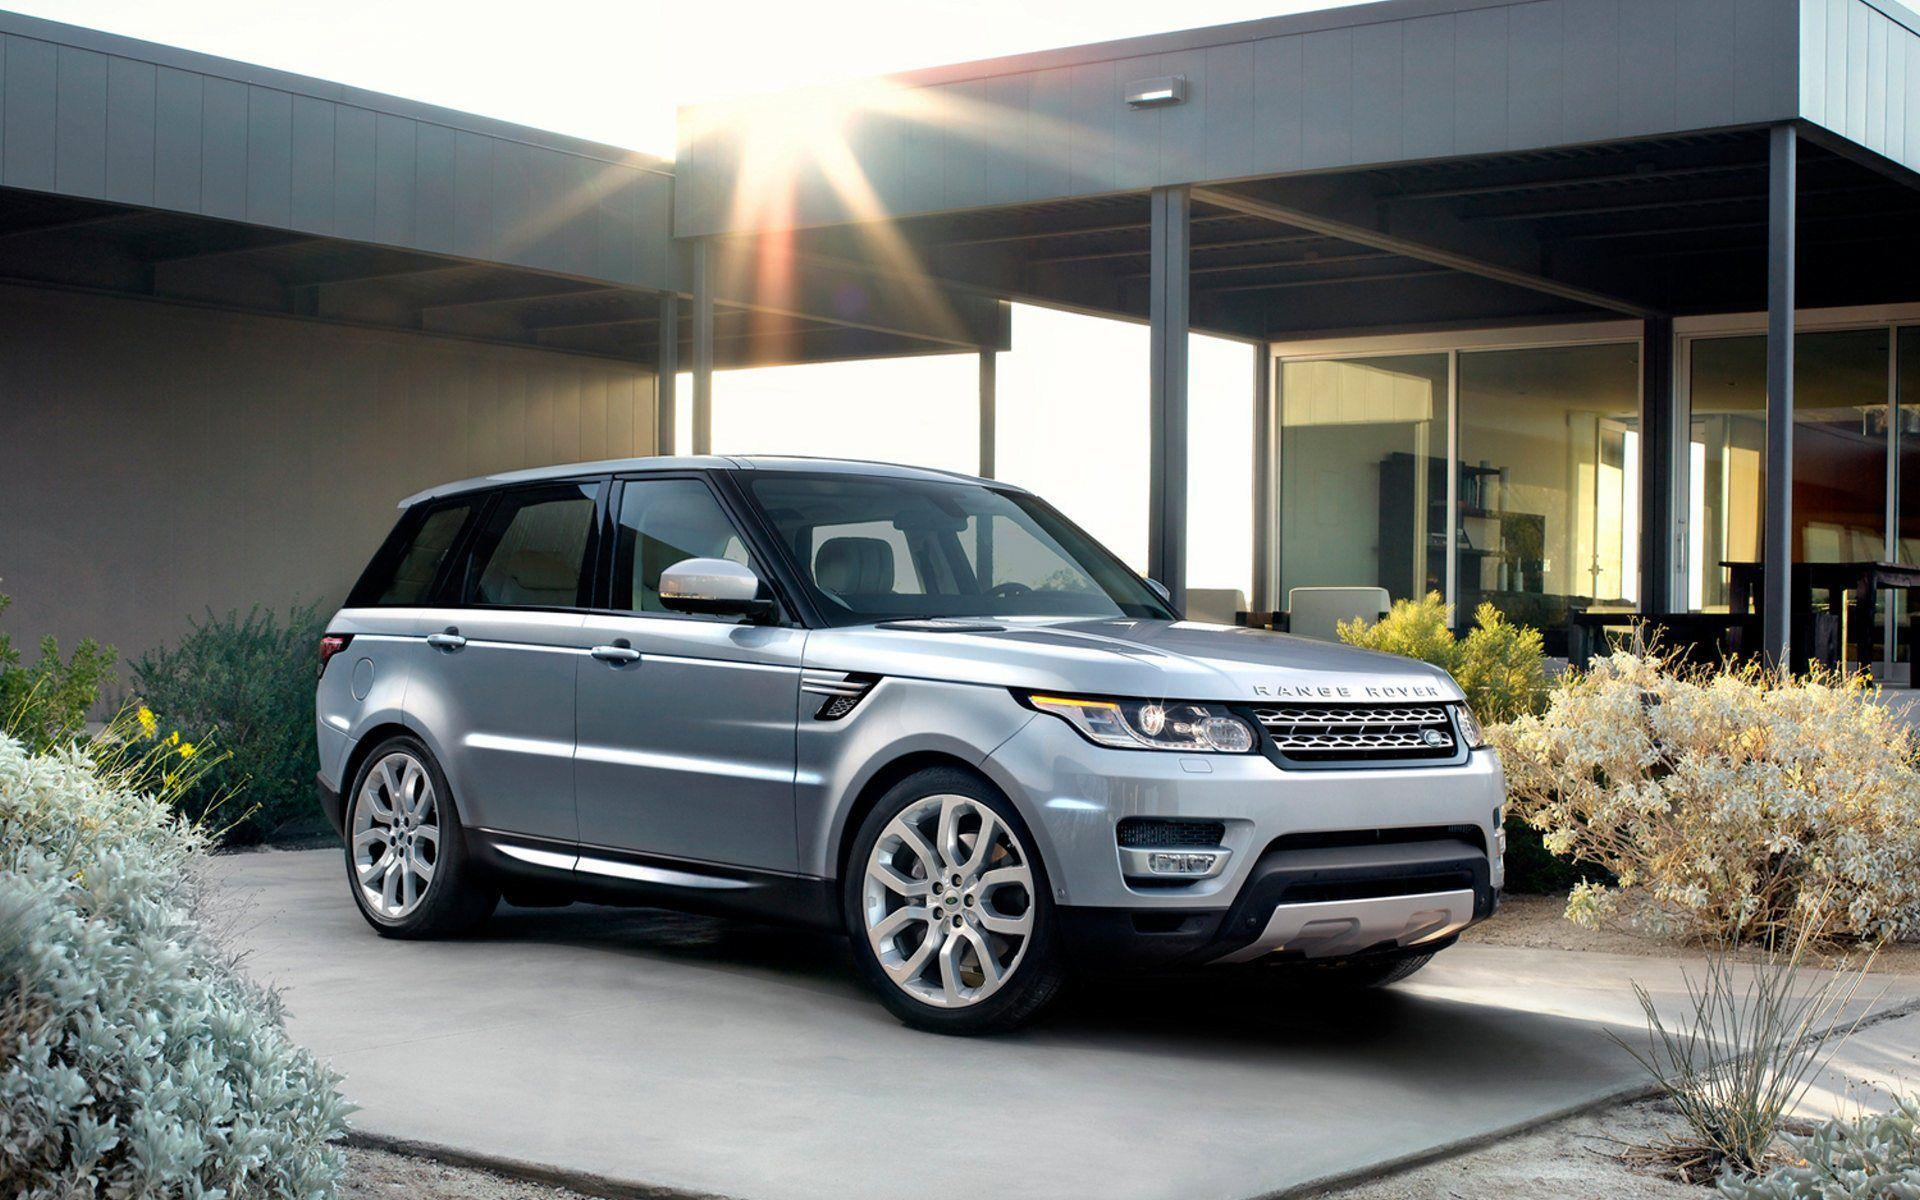 Vehicles Range Rover Sport wallpapers